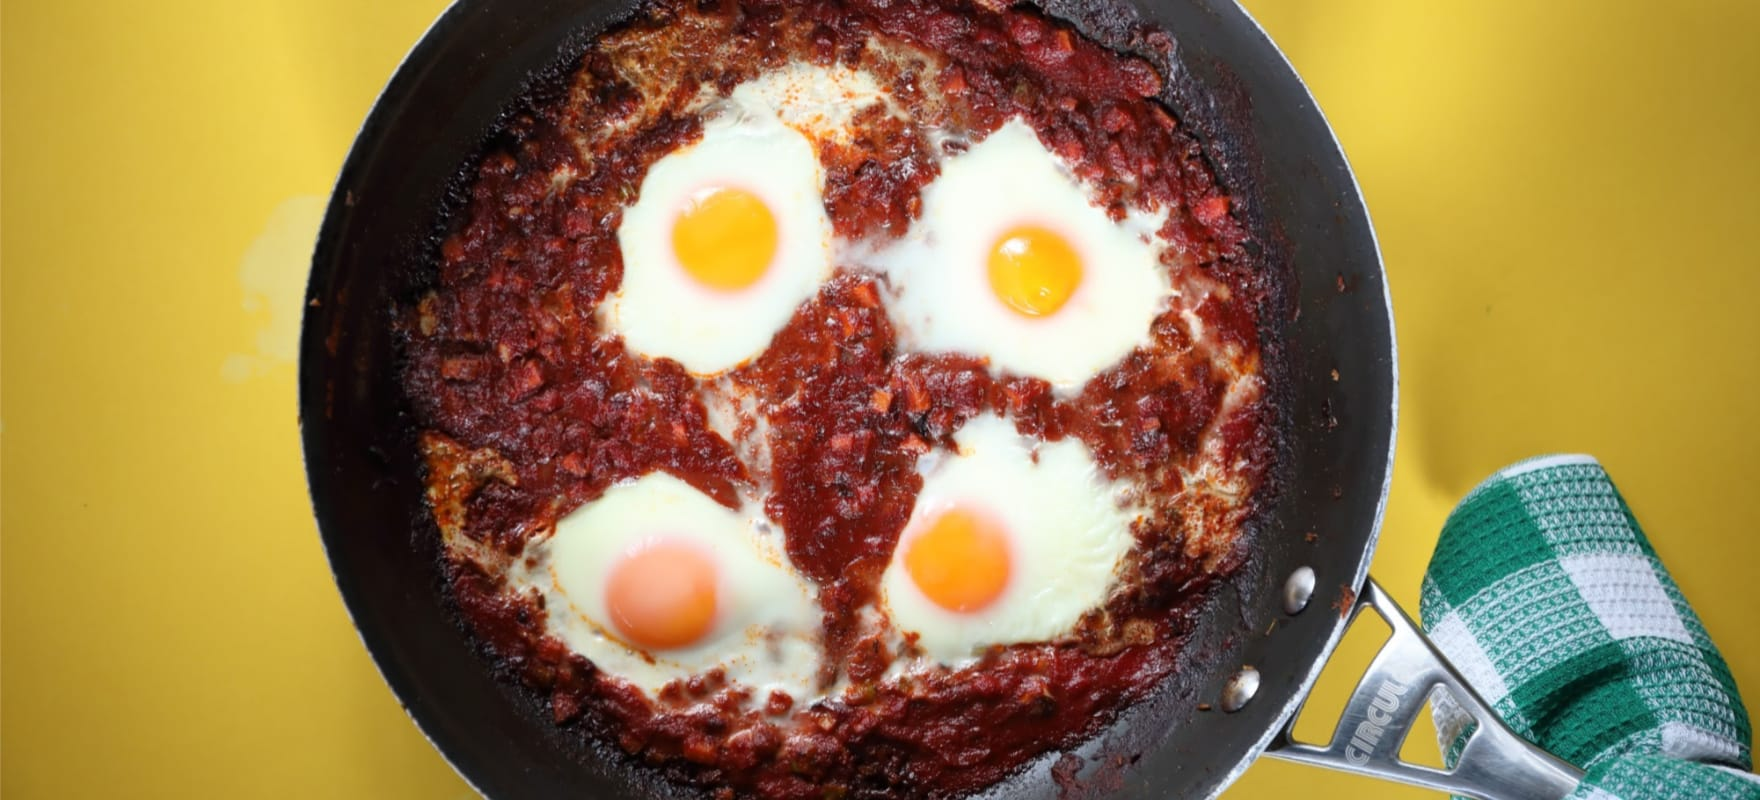 Baked eggs with cumin flatbread image 1